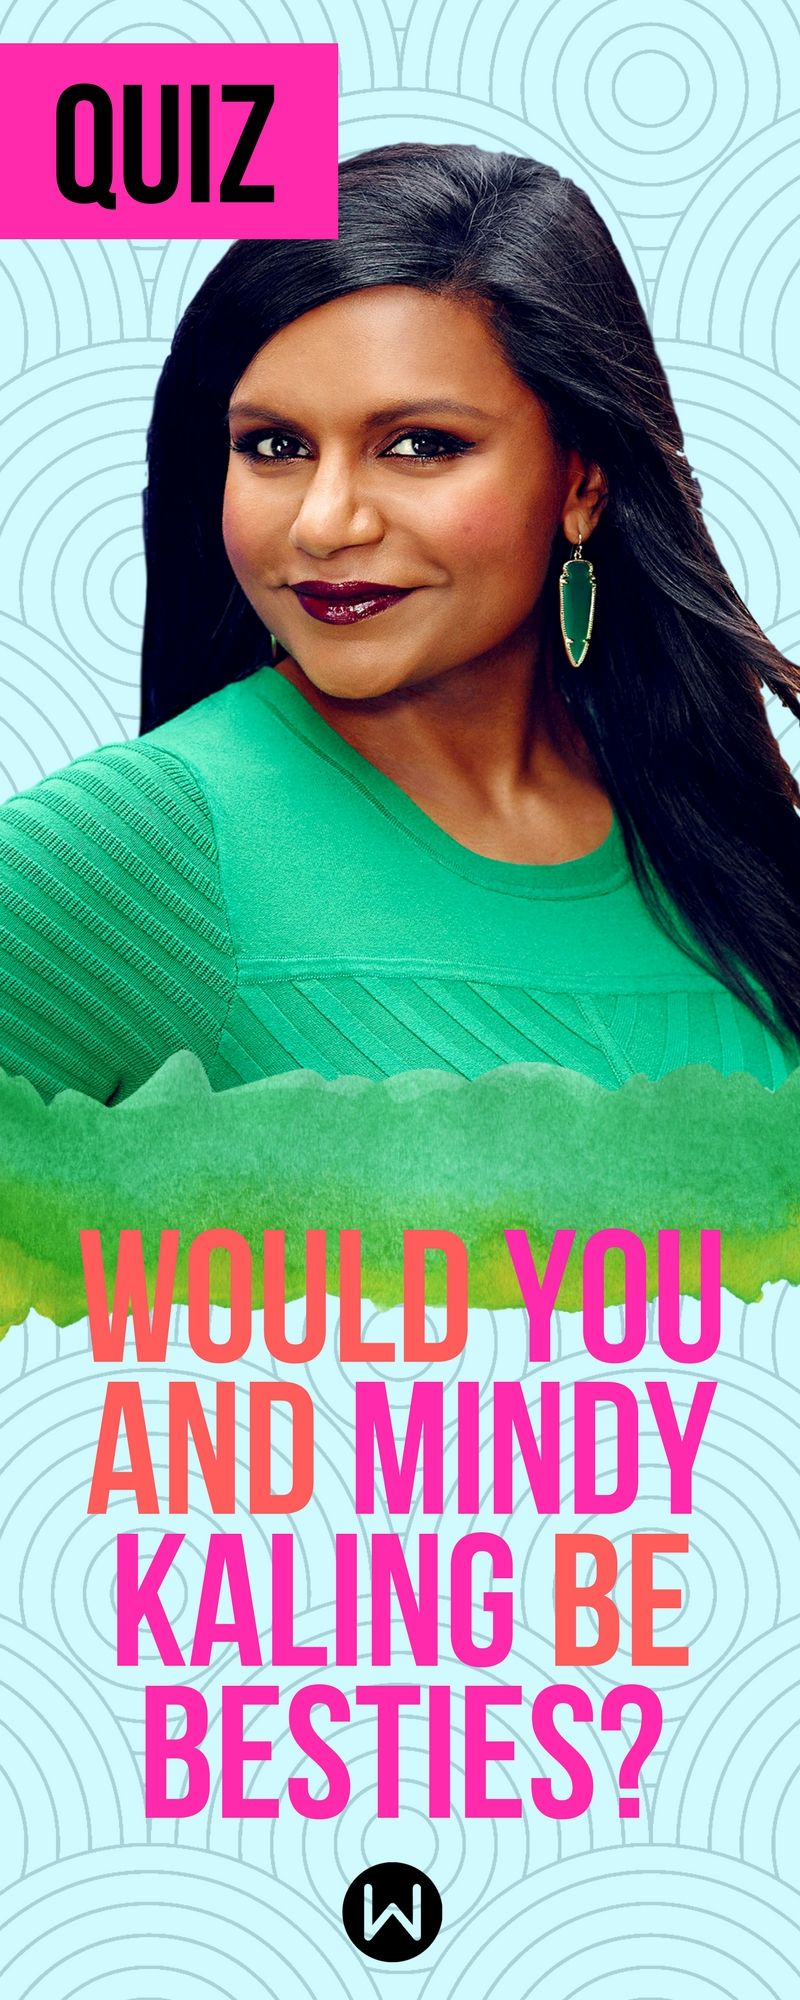 Quiz: Would you and Mindy Kaling be besties? About Yourself Quiz, Fun Quiz, Personality  Test, Random Questions, Personality Quiz, Girl Quiz, ...